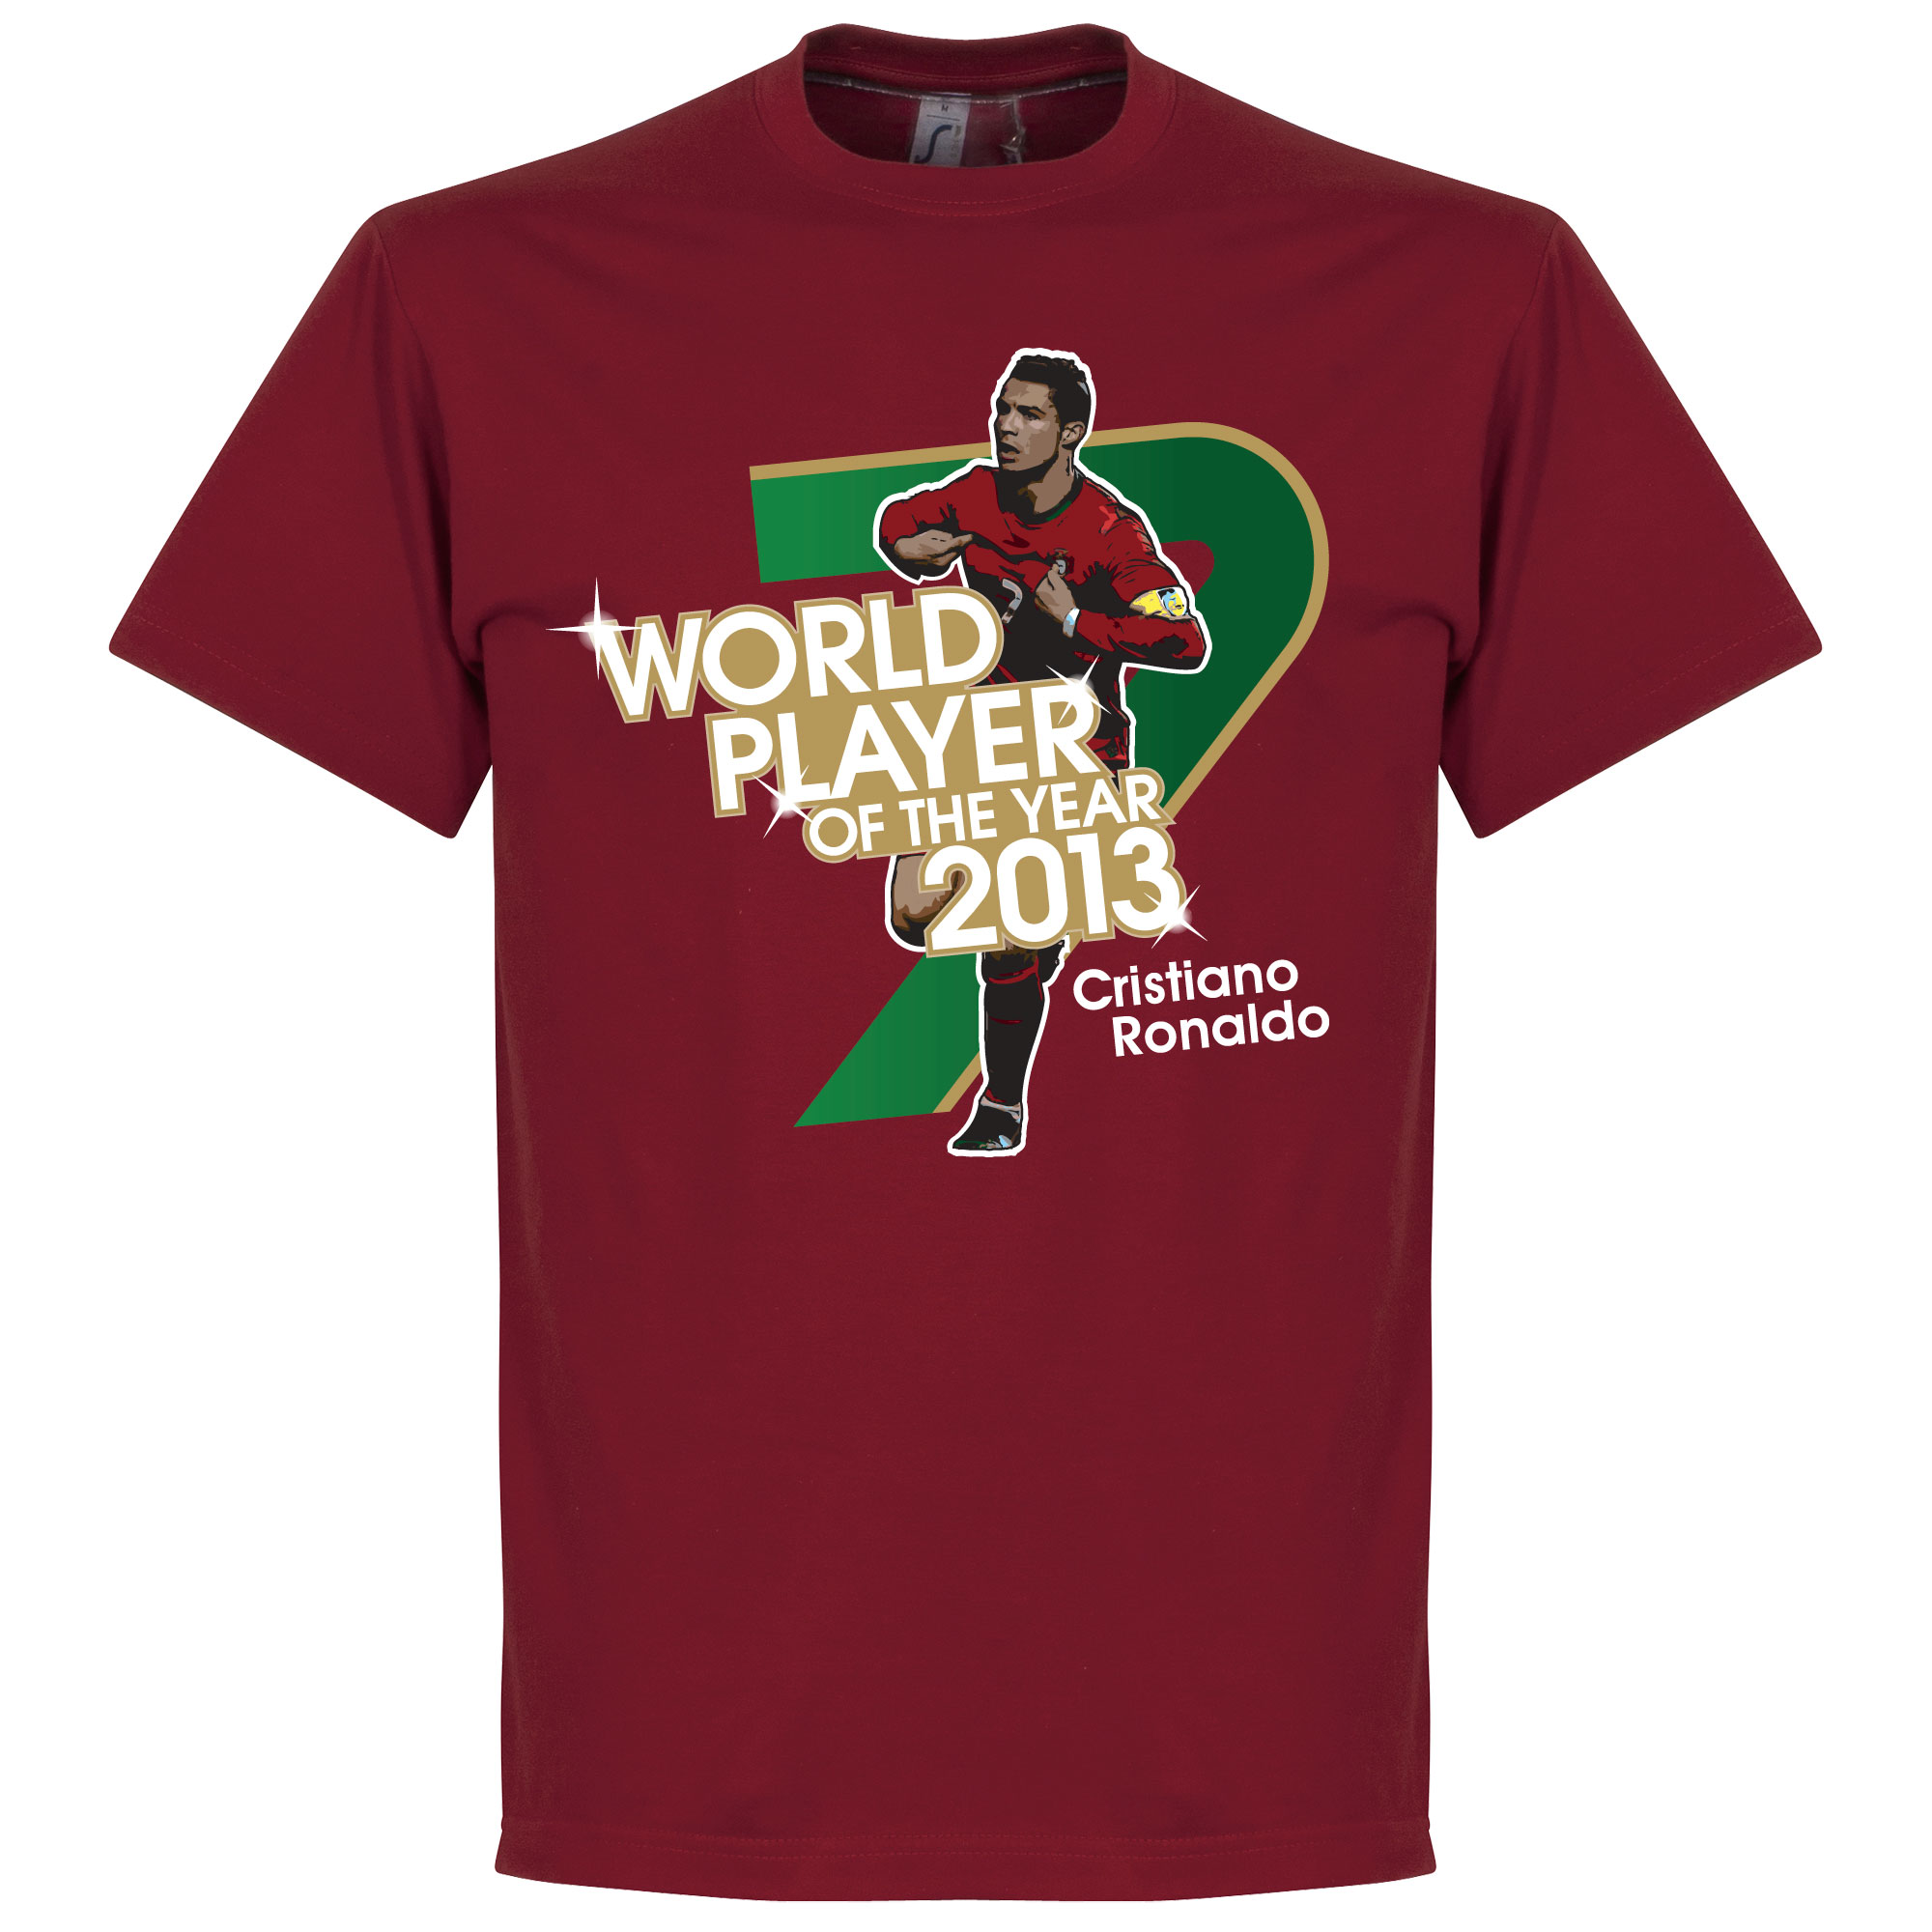 Ronaldo 2013 World Player of the Year Tee - XL